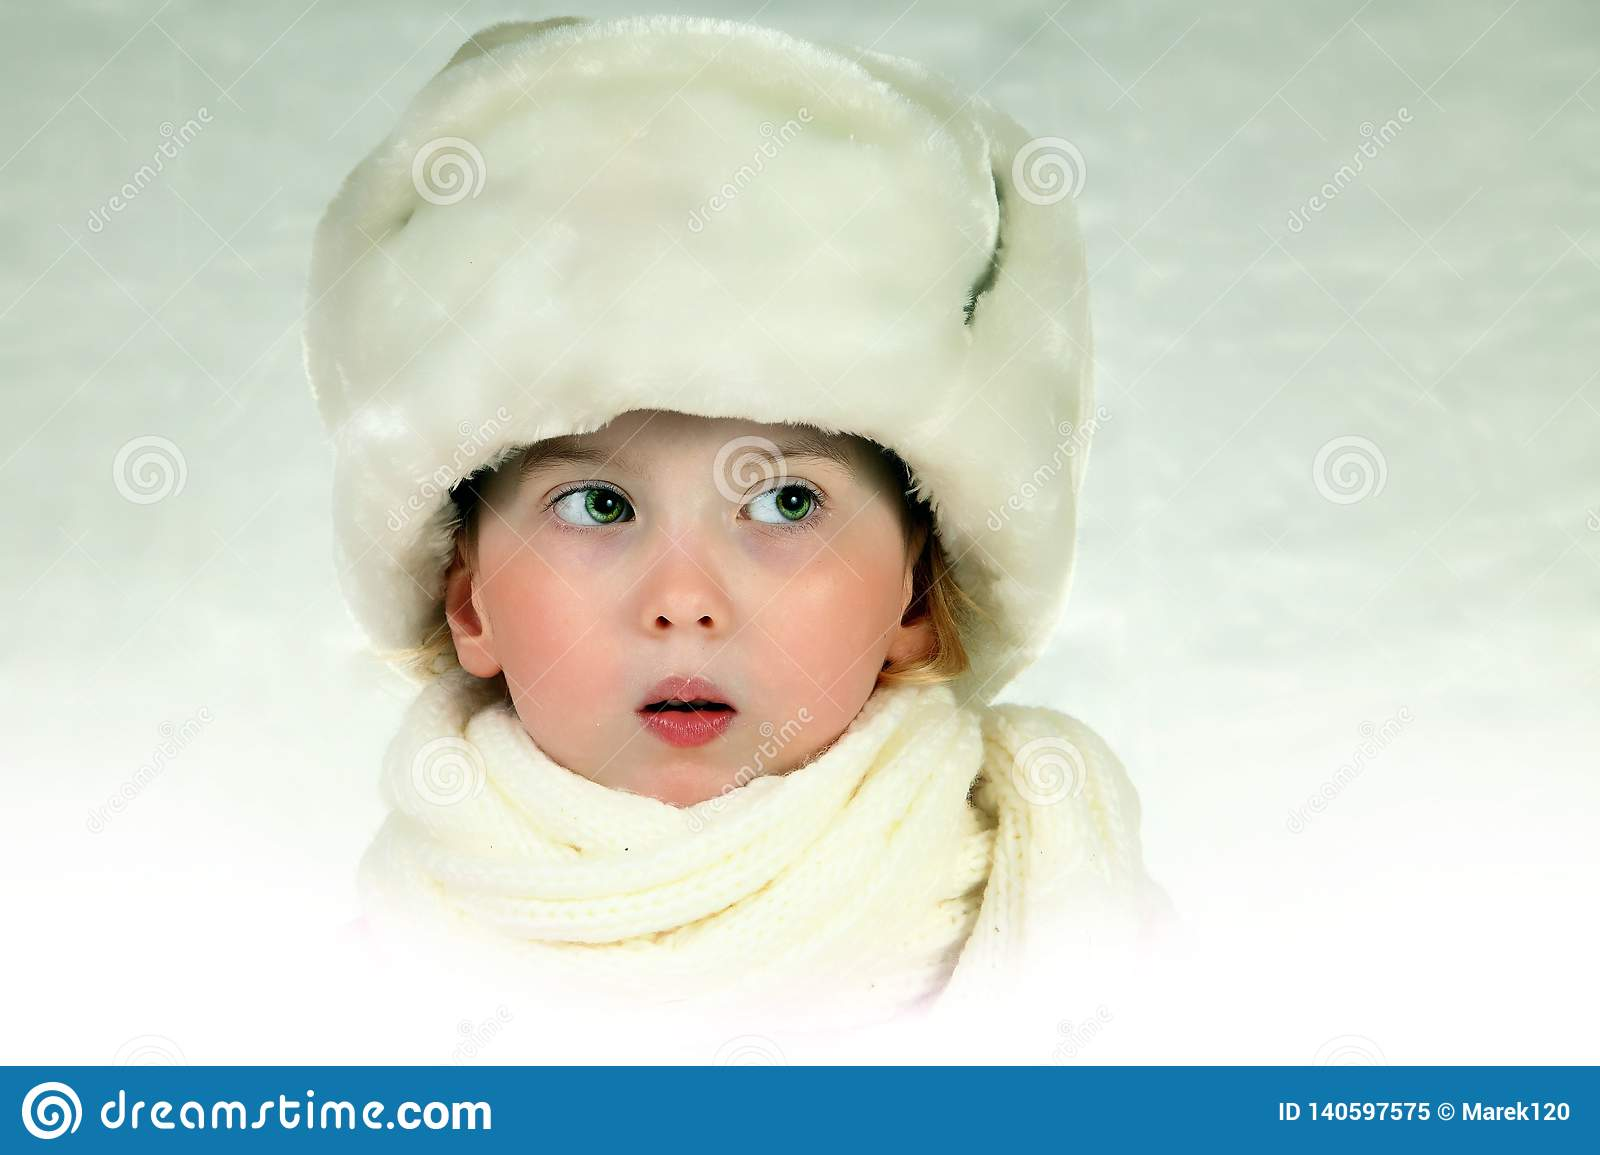 Teenage girl posing as frozen in cold. White furry hat - atmosphere of cold winter